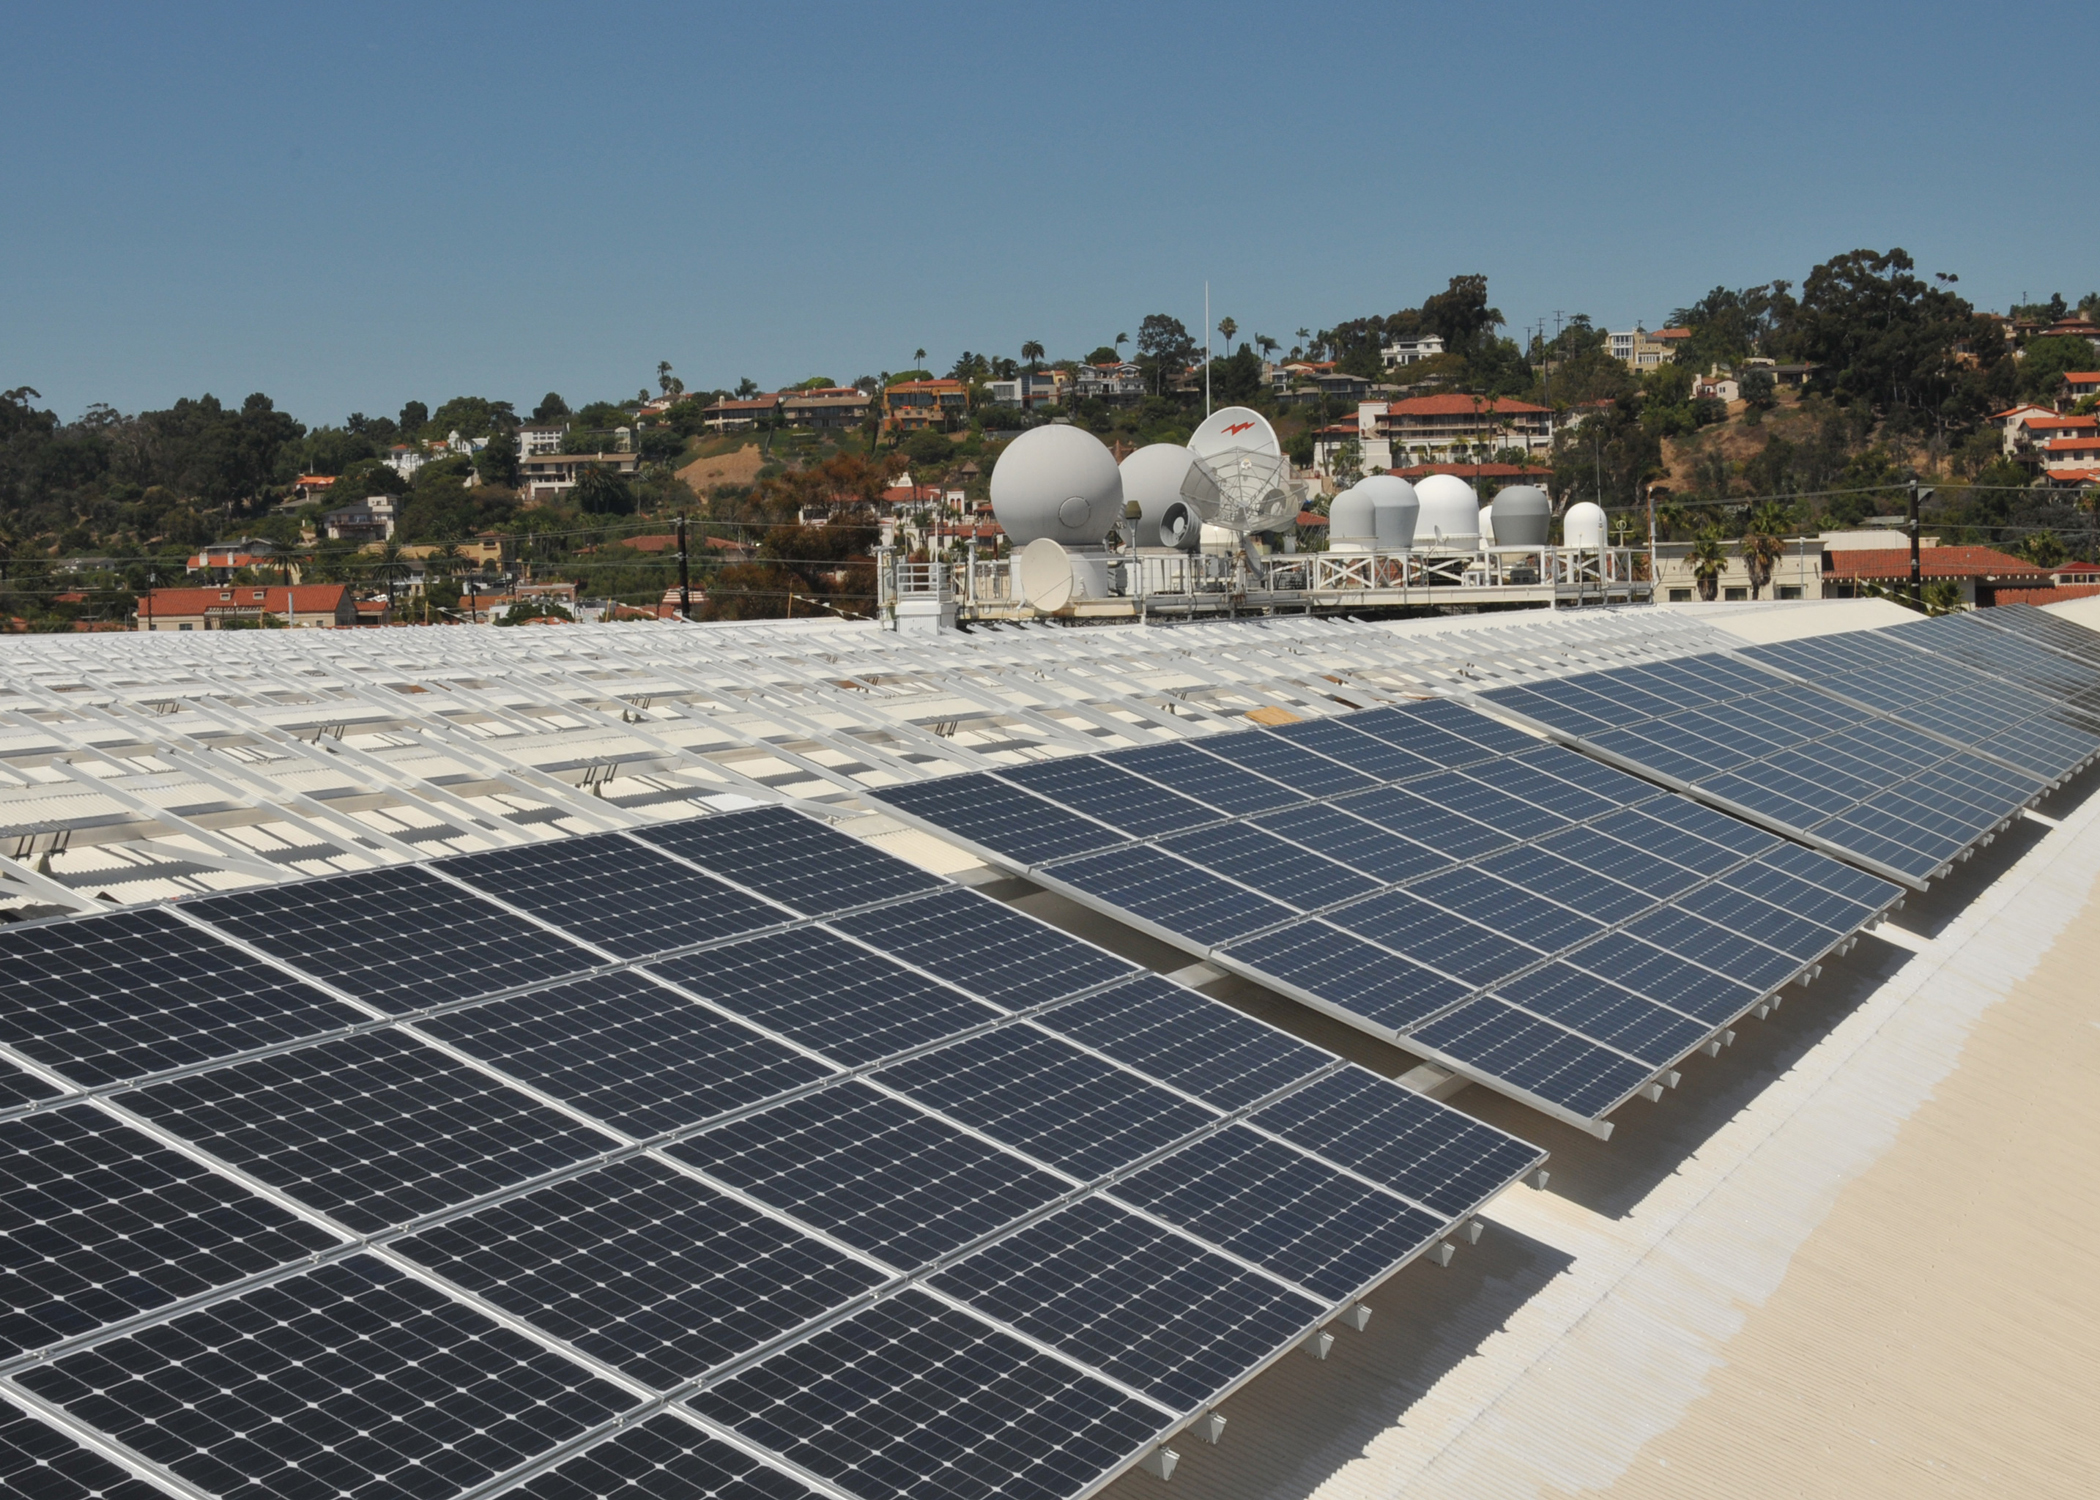 US Military Solar Installation at Systems Command HQ